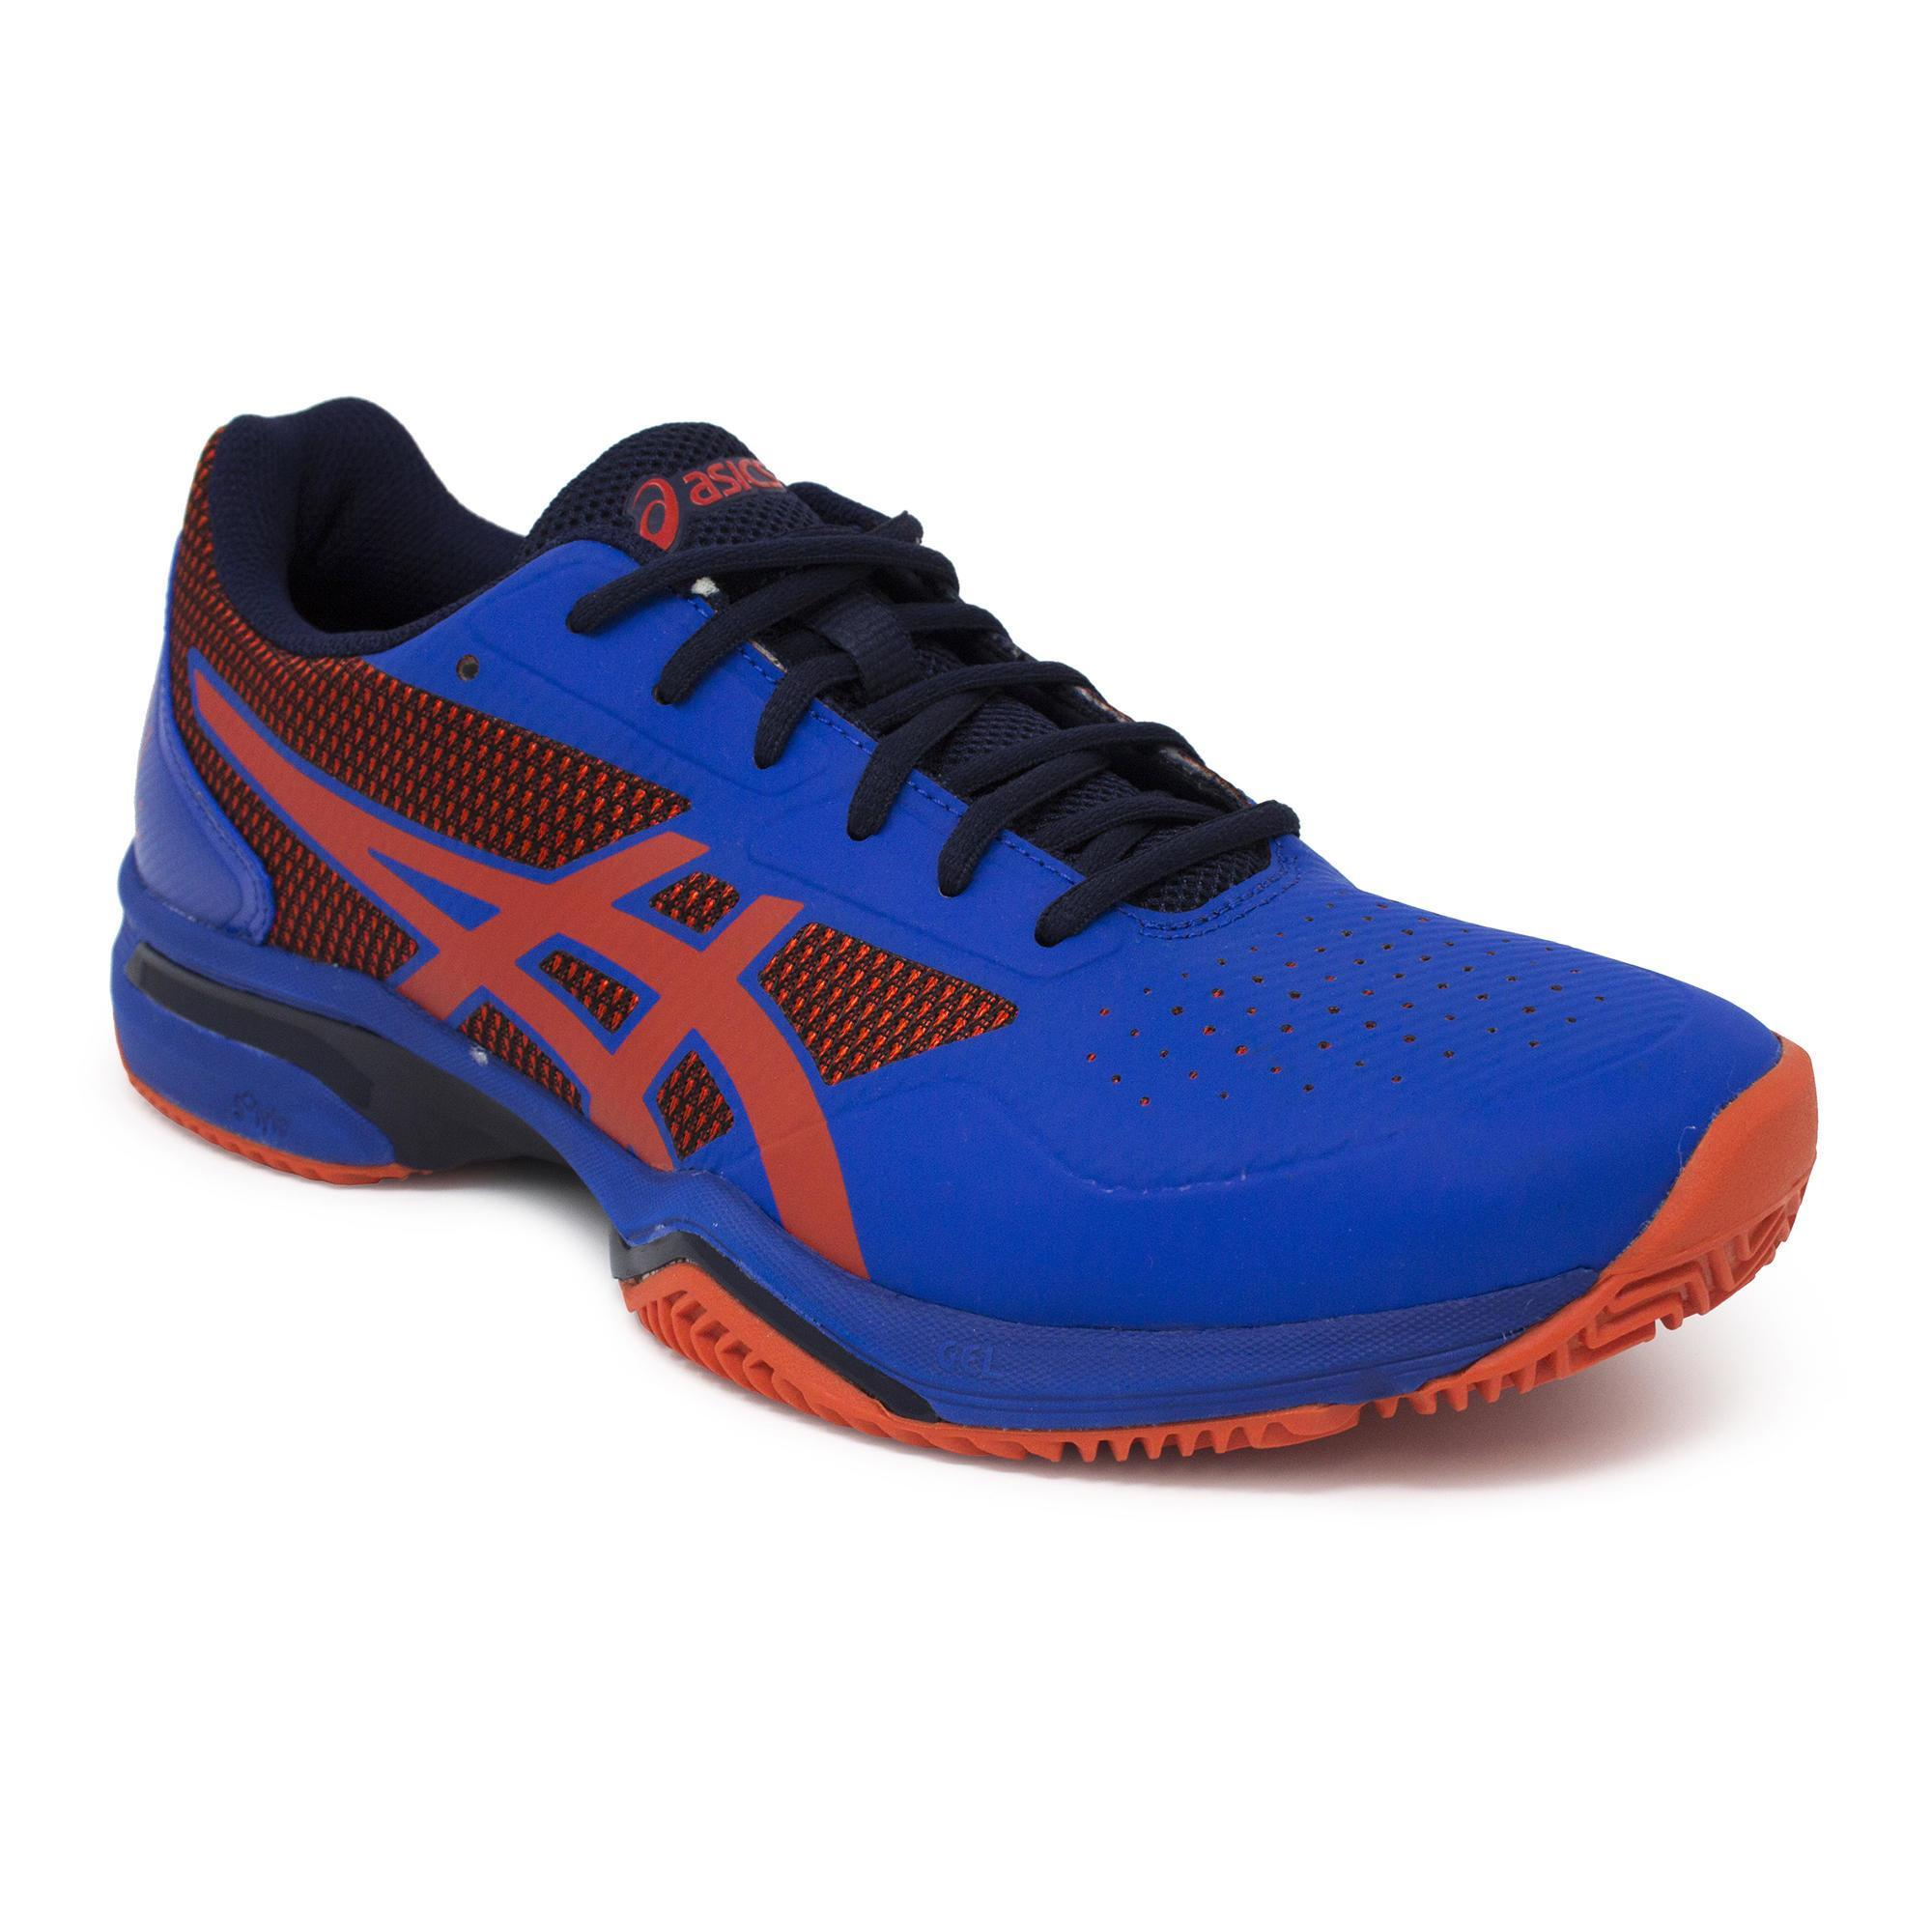 bb0266e53 Asics - Decathlon